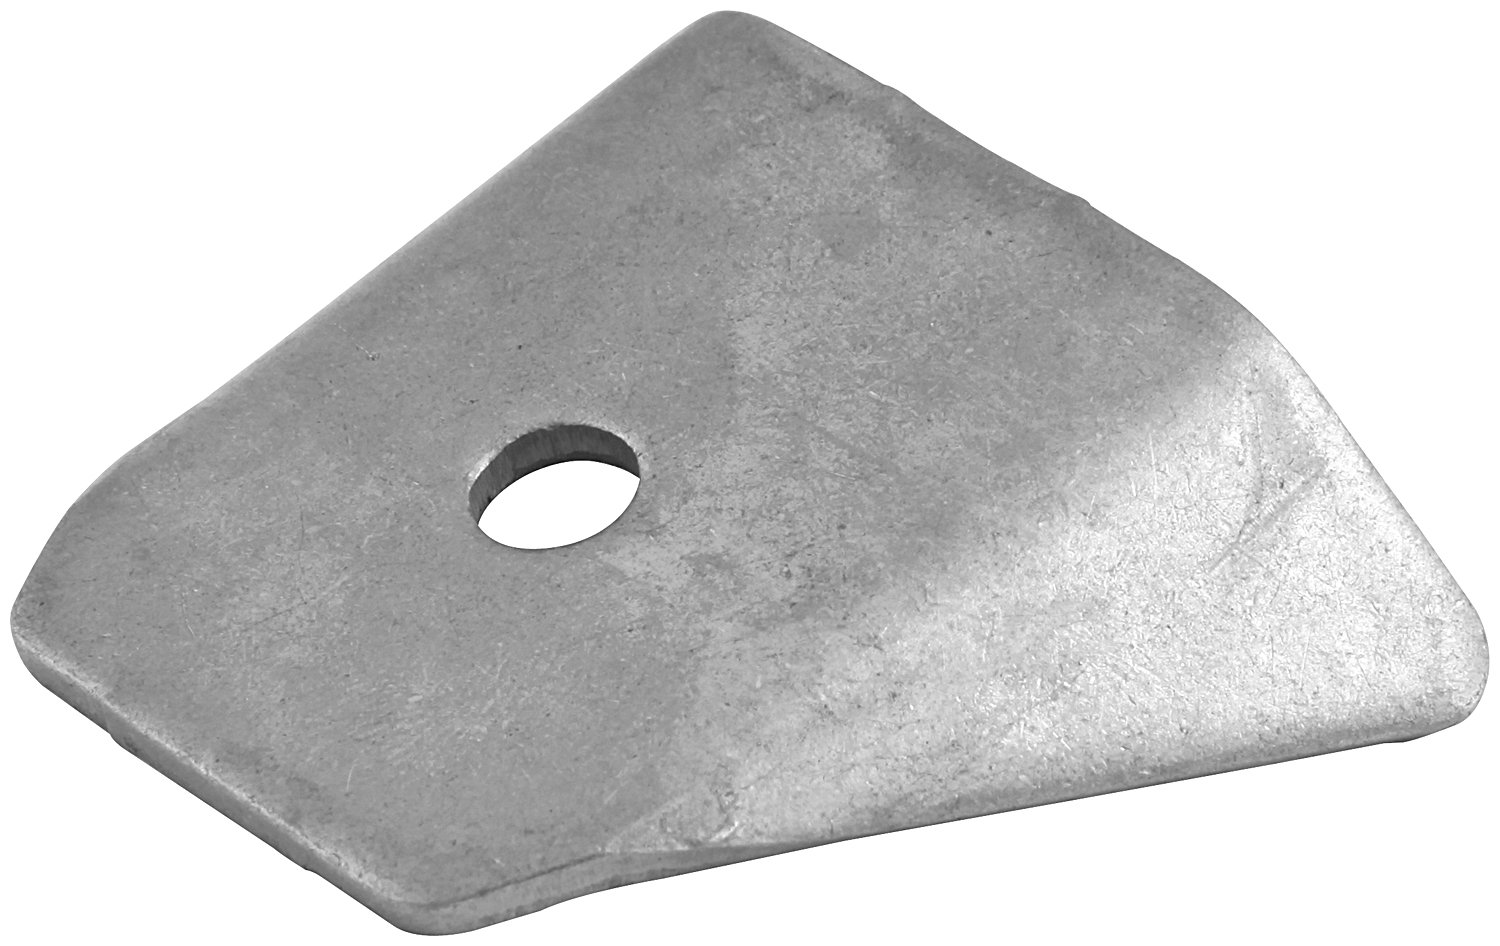 Pack of 4 Allstar ALL60027 1-9//16 Tall 3//16 Thick 1//4 Hole 7//8 Center Hole Height Mild Steel Body Brace Chassis Tab for Flat Mount,